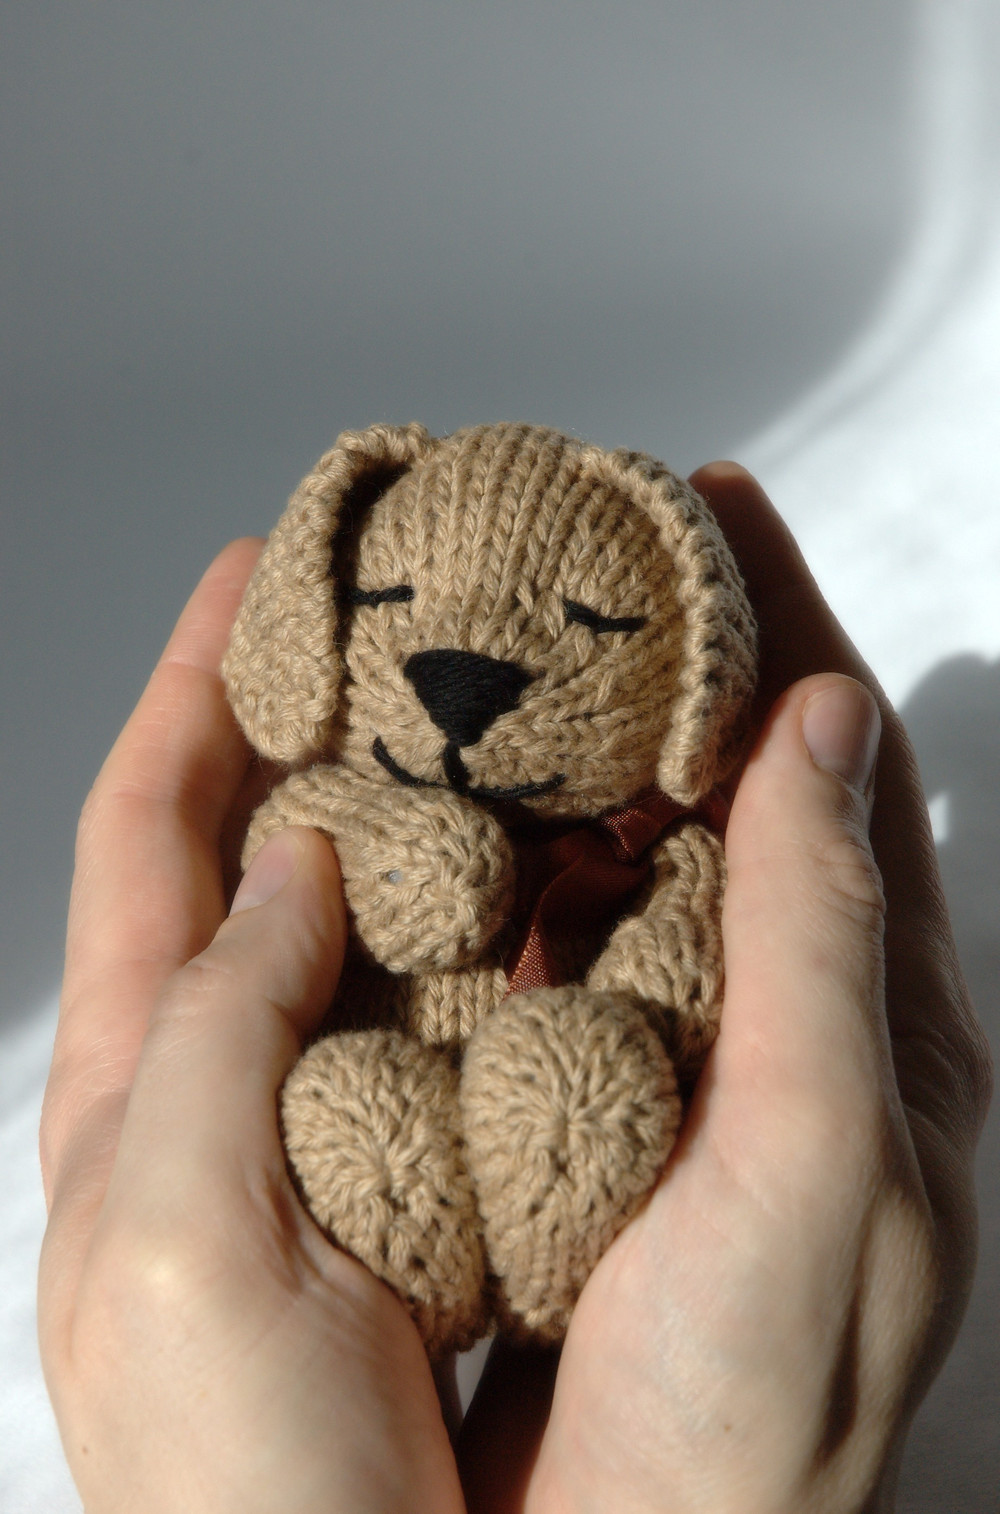 Close-up of adult hands holding the knitted toy puppy